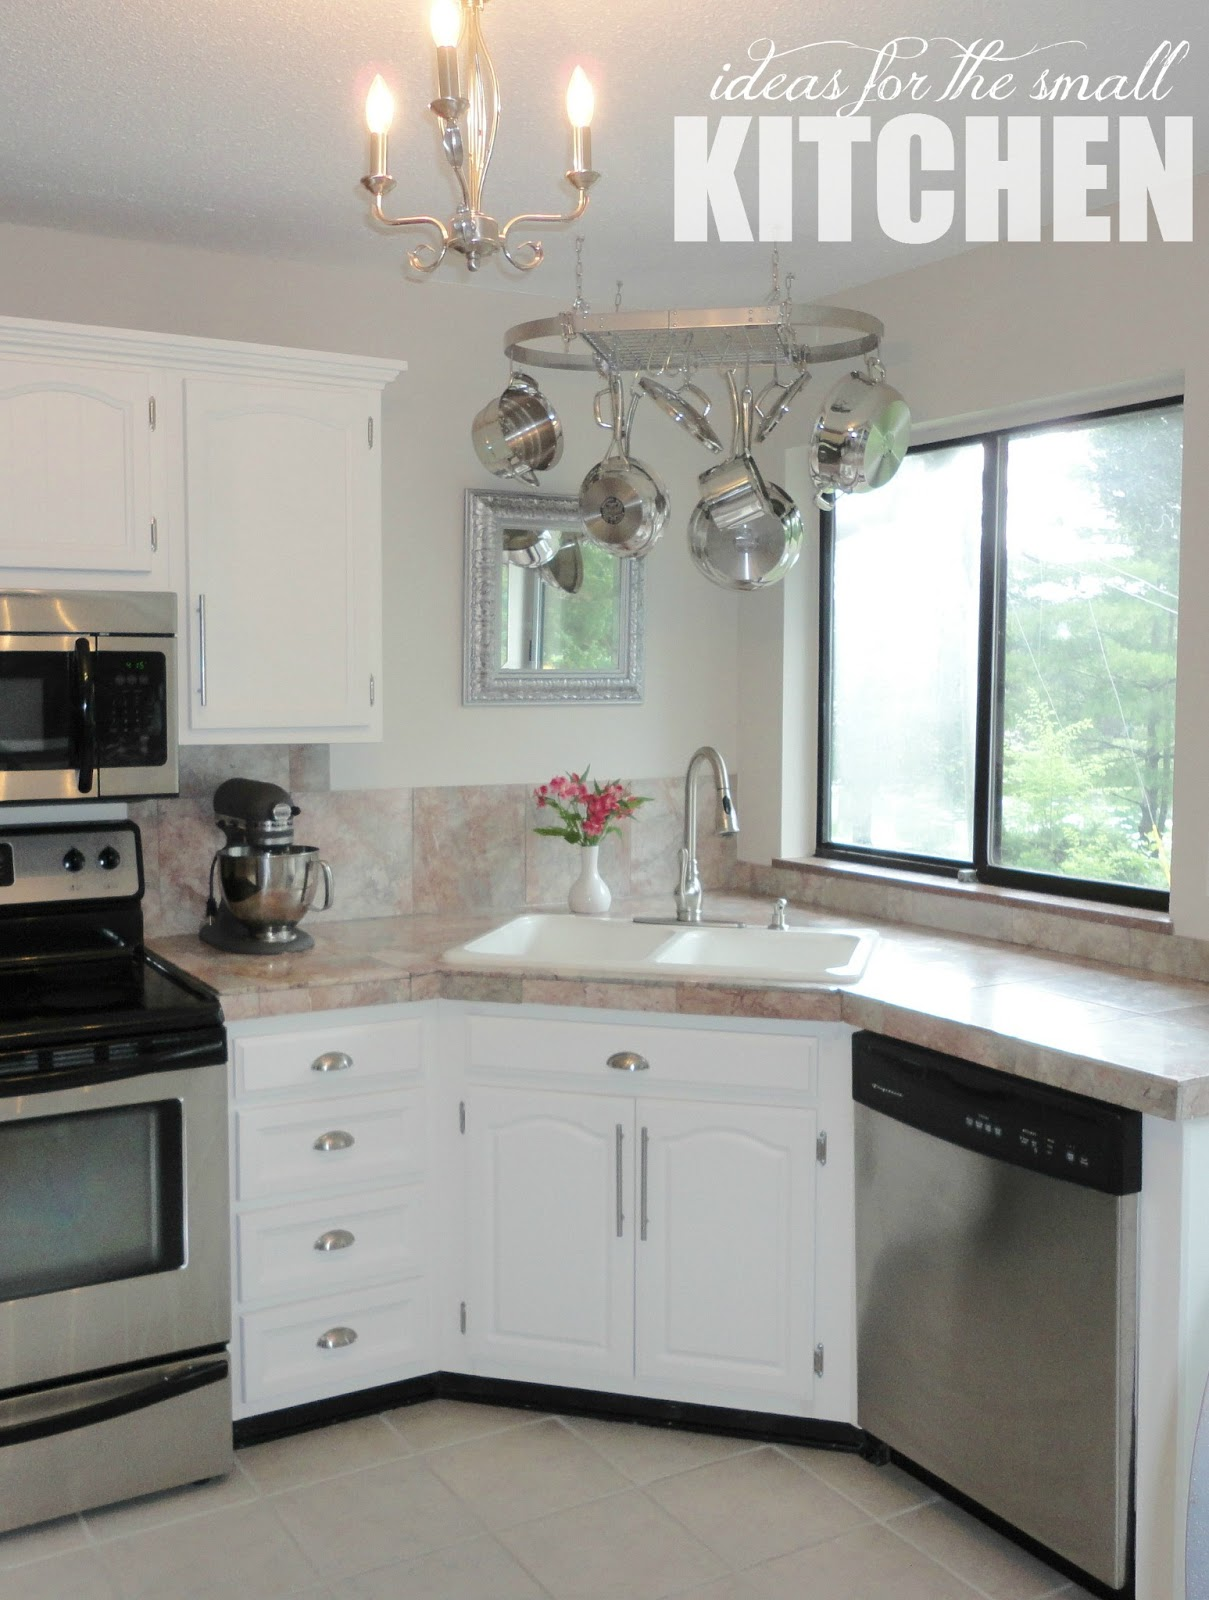 Over The Sink Kitchen Window Treatments Livelovediy The Kitchen To Do List Progress Report